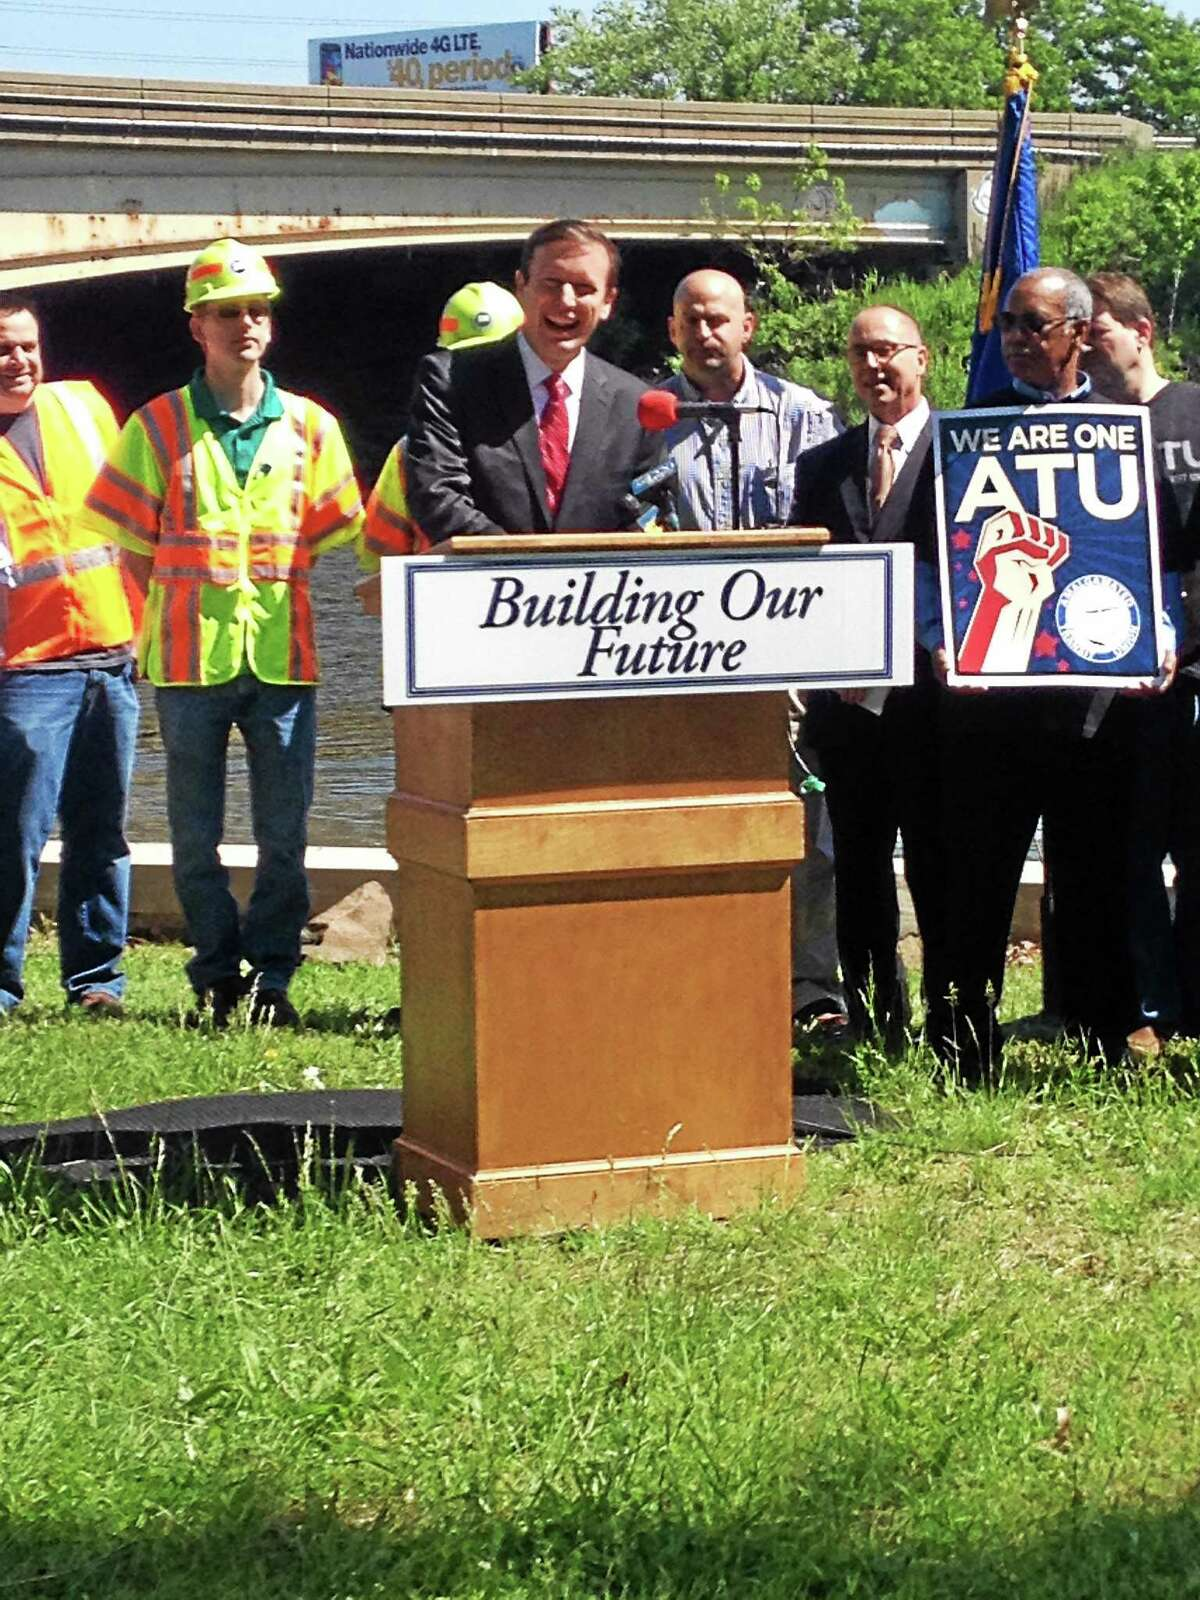 U.S. Sen. Chris Murphy, D-Conn., speaks at a news conference Friday in New Haven about his call for the gas tax to be raised in order to fund infrastructure projects, including bridge replacement and repair.